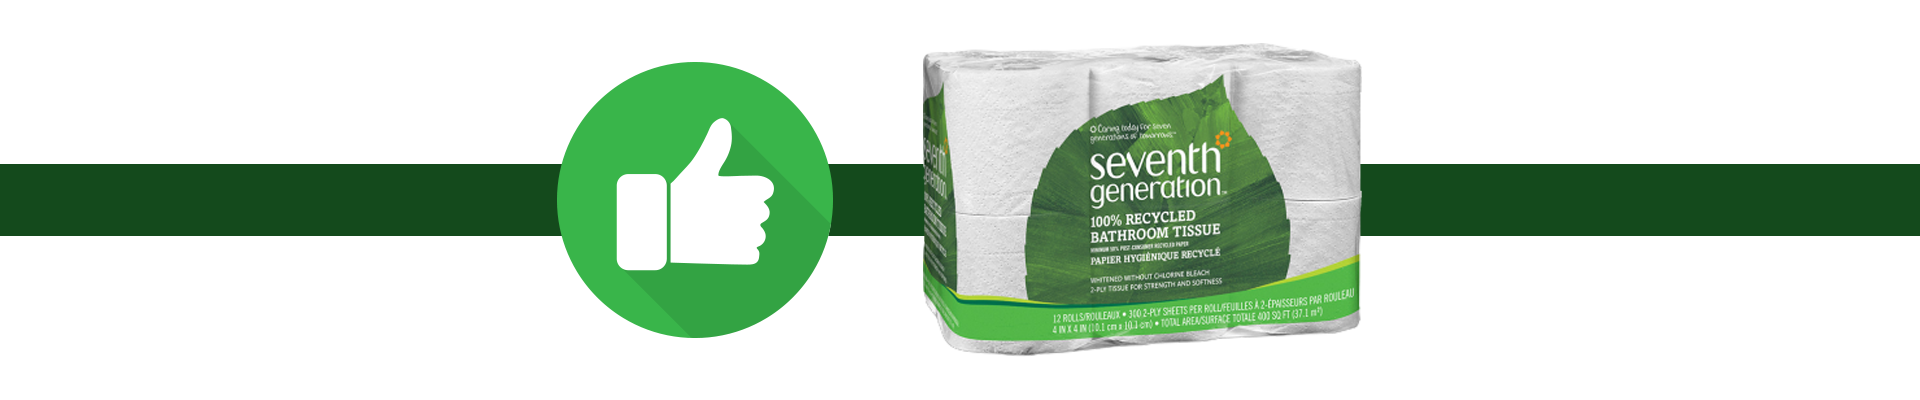 Thumbs up to disolving toilet paper like seventh generation